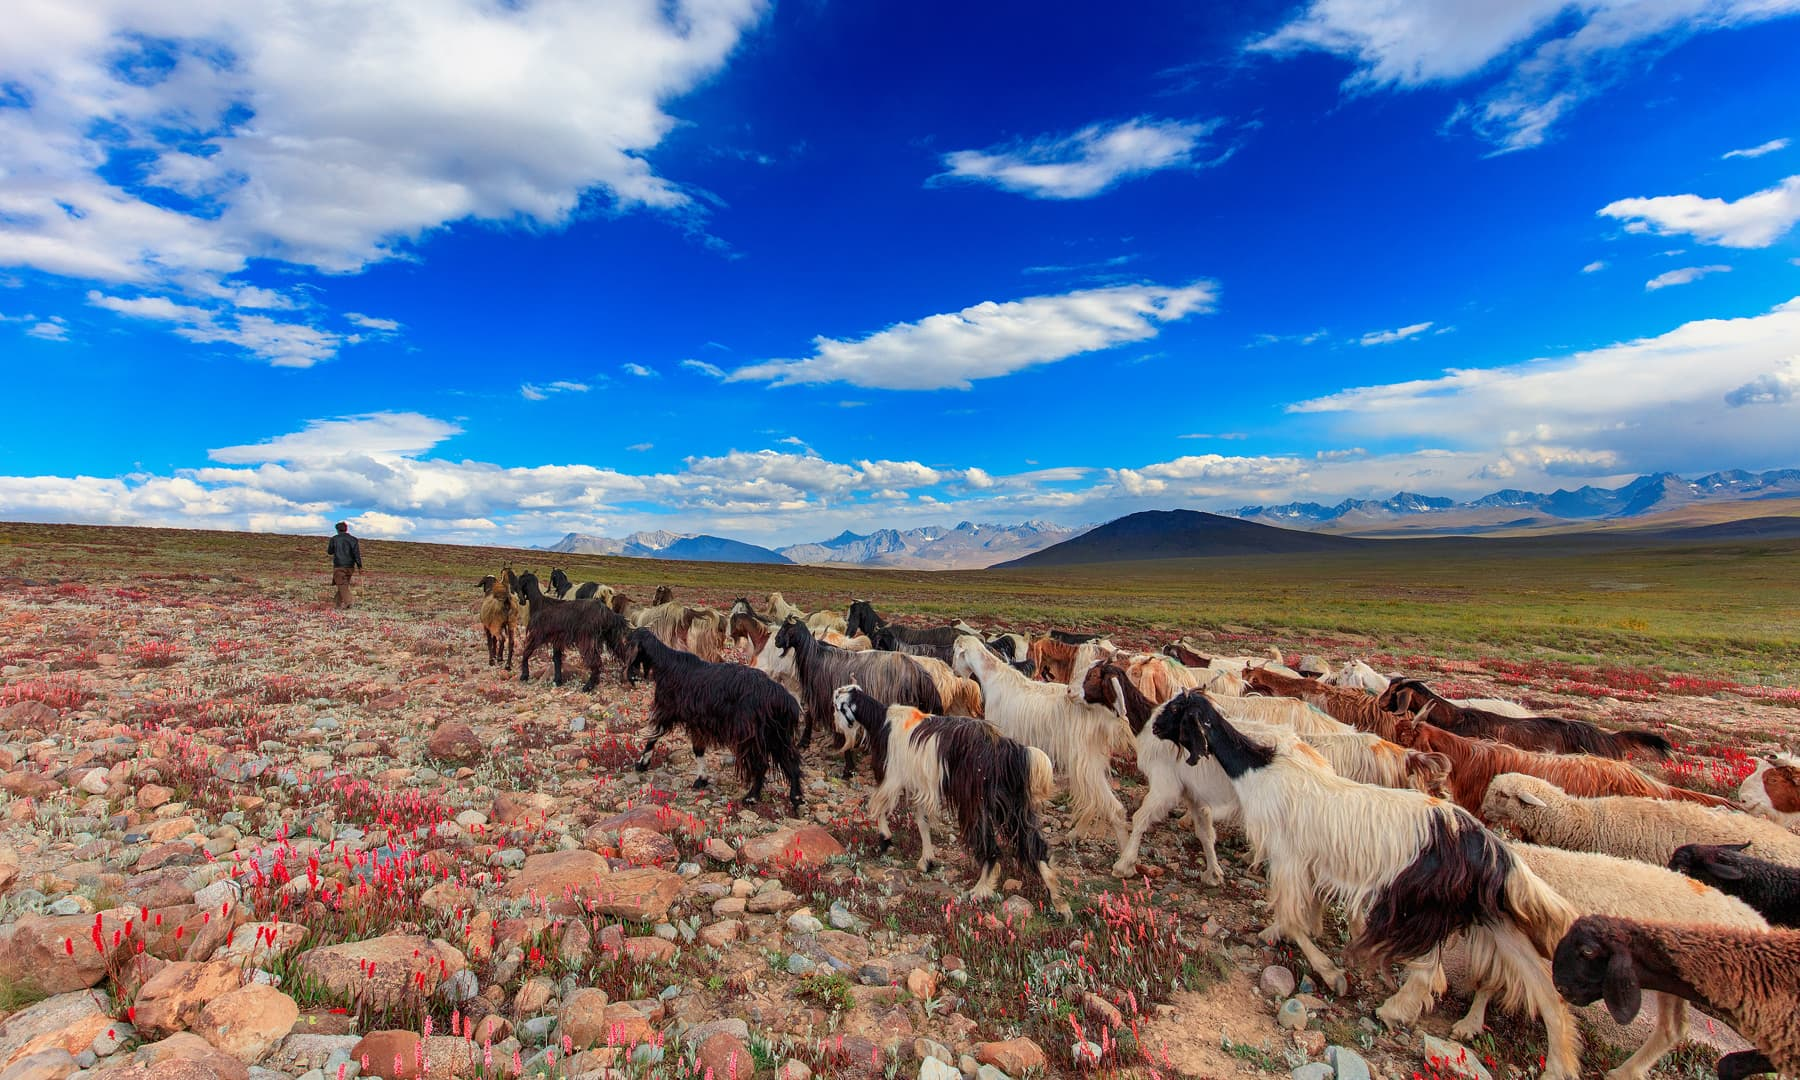 A shepherd leads his herd back to their home in Deosai.